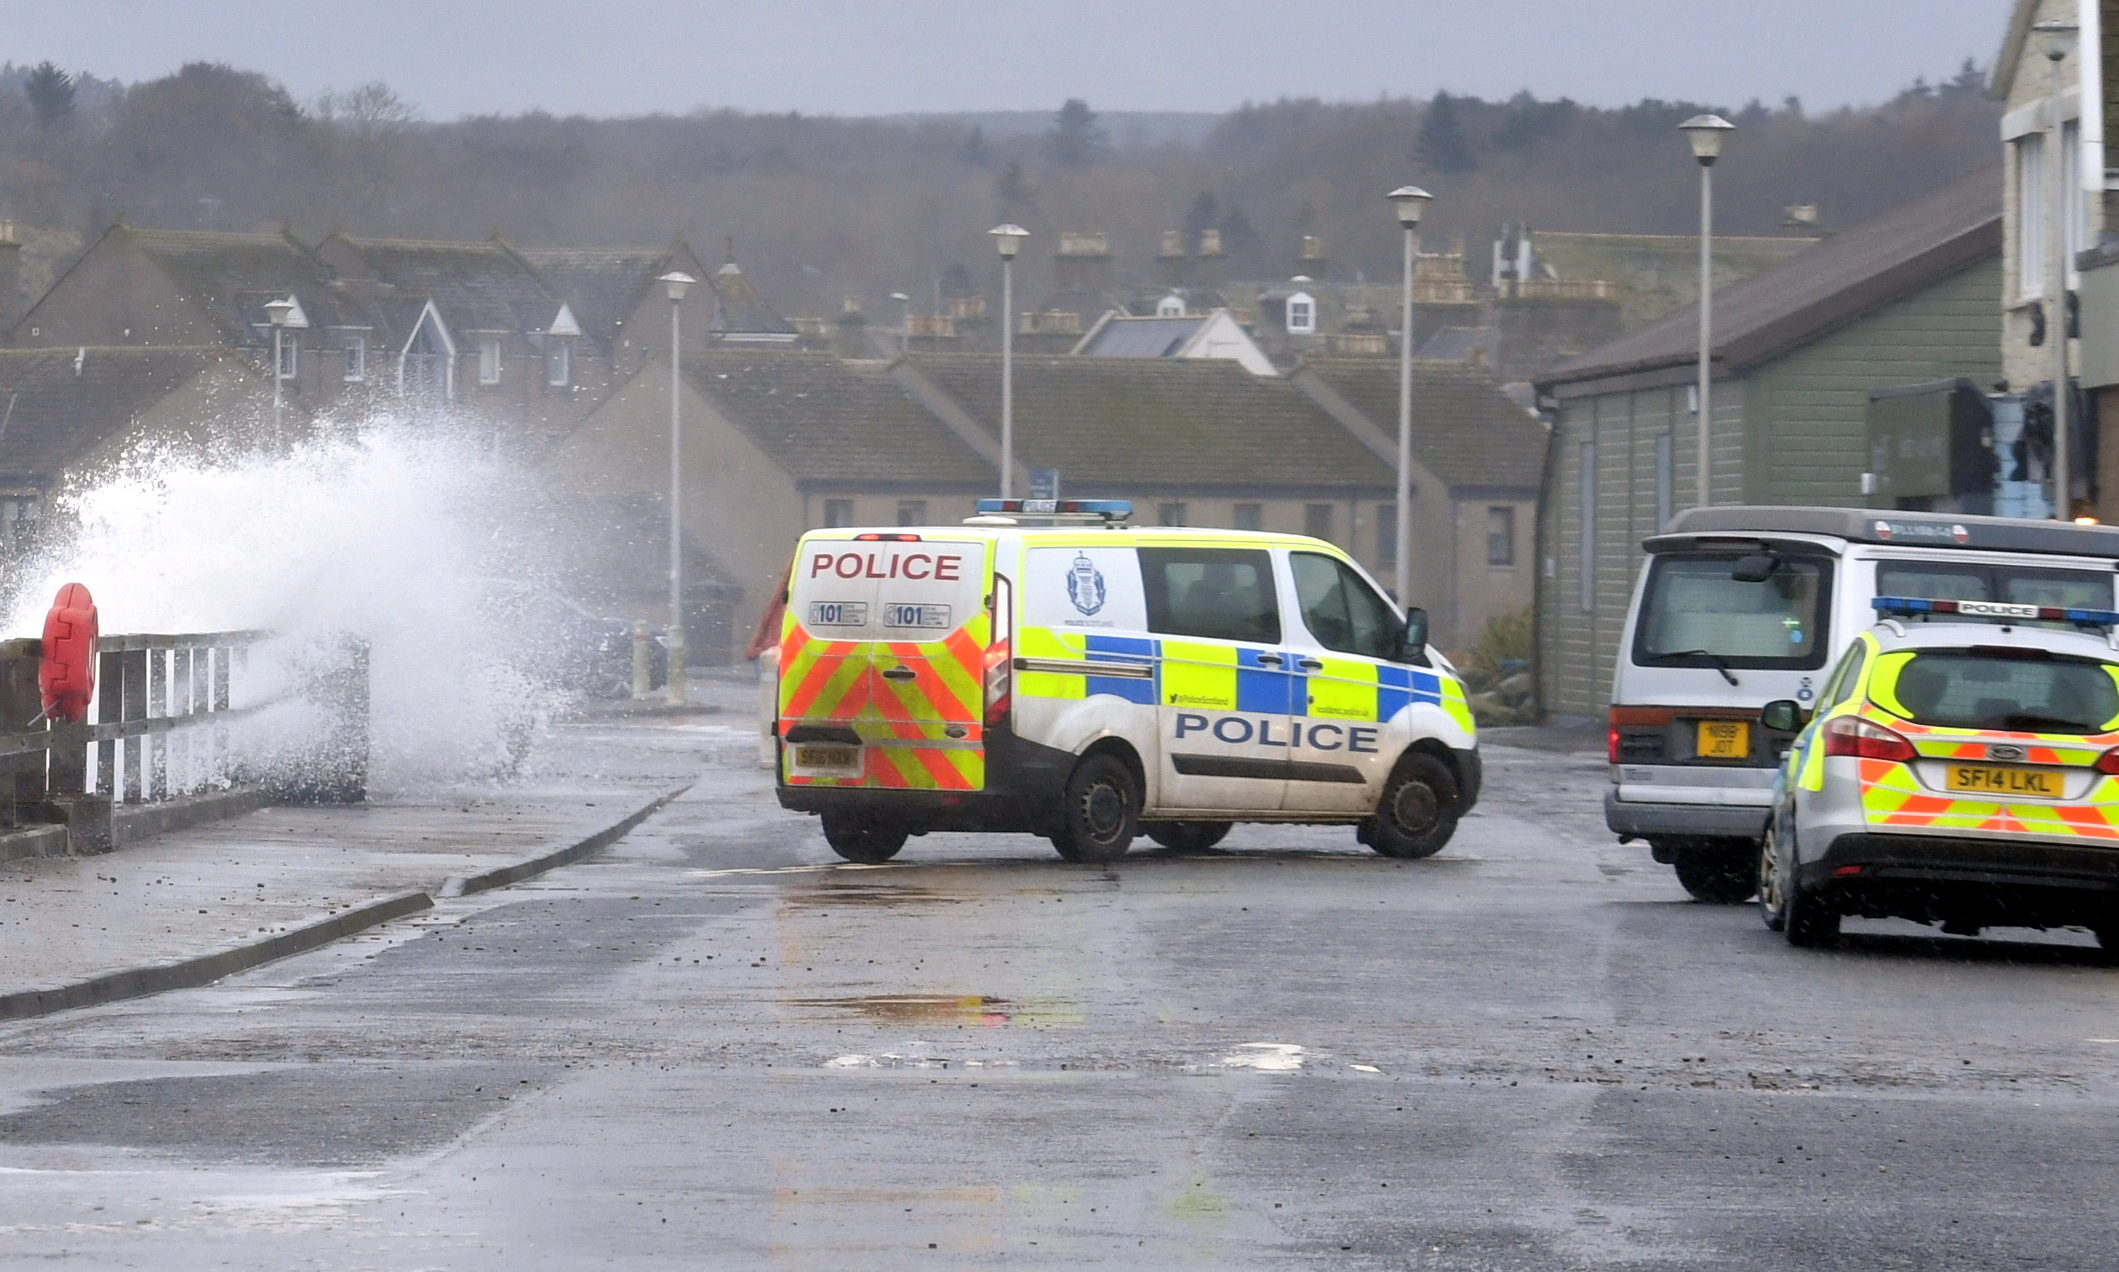 Police have closed off the beach promenade at Stonehaven.